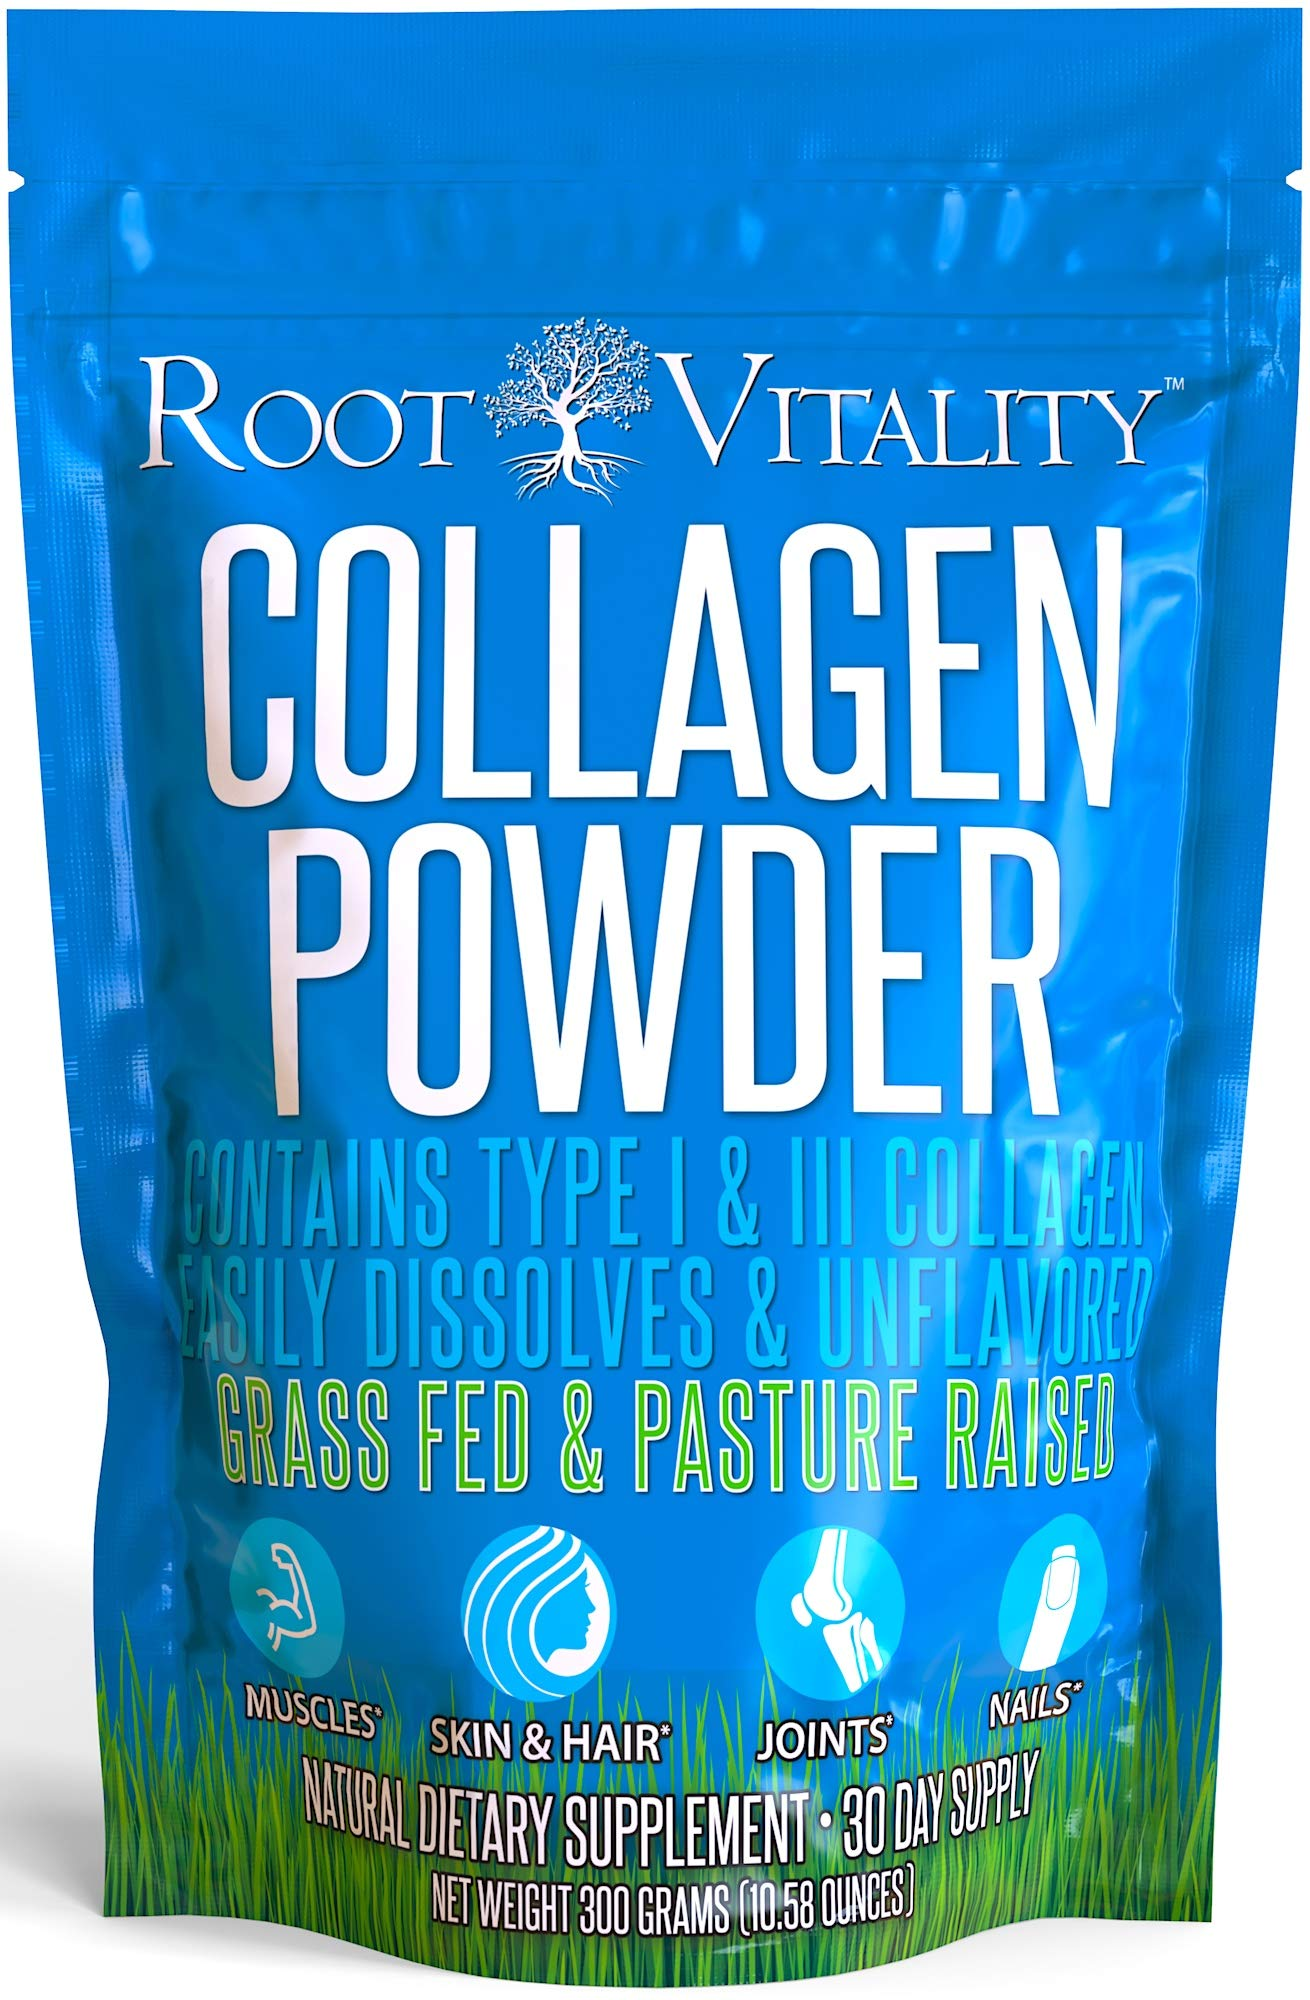 Root Vitality Collagen Powder, Collagen Peptides, Grass Fed, Premium Quality Collagen Protein,